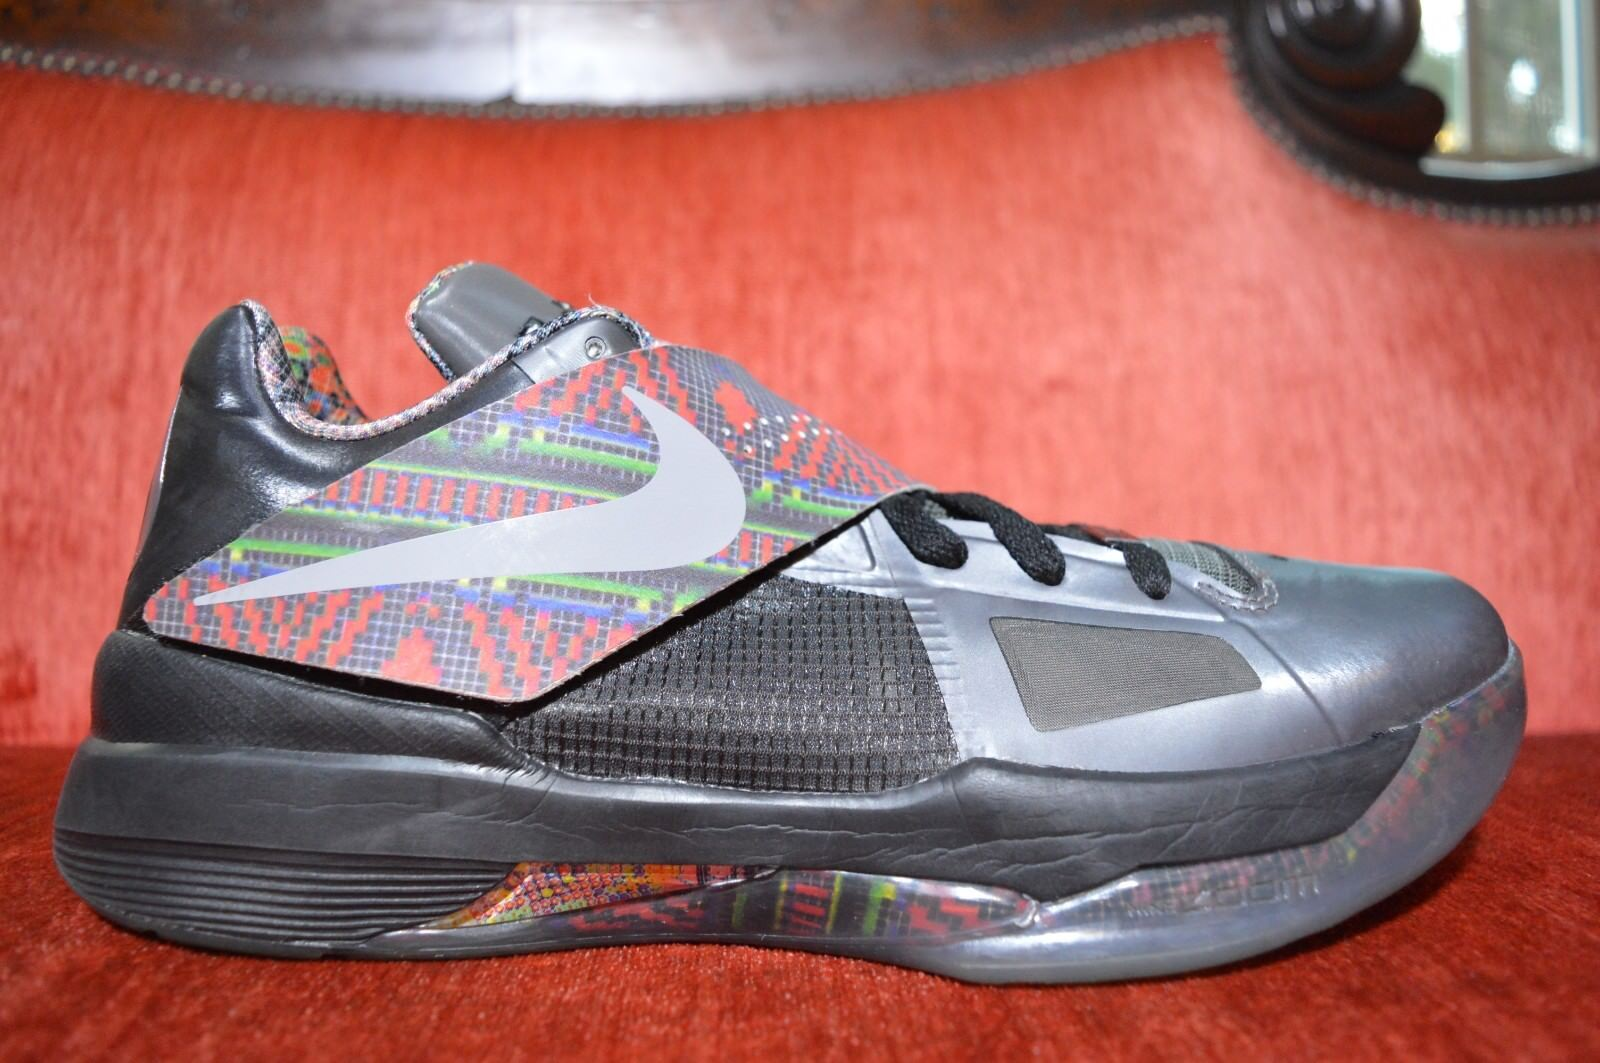 56d48064e37c Clean 2011 Nike Zoom KD IV 4 BHM Size 10 Kevin Durant Black History ...